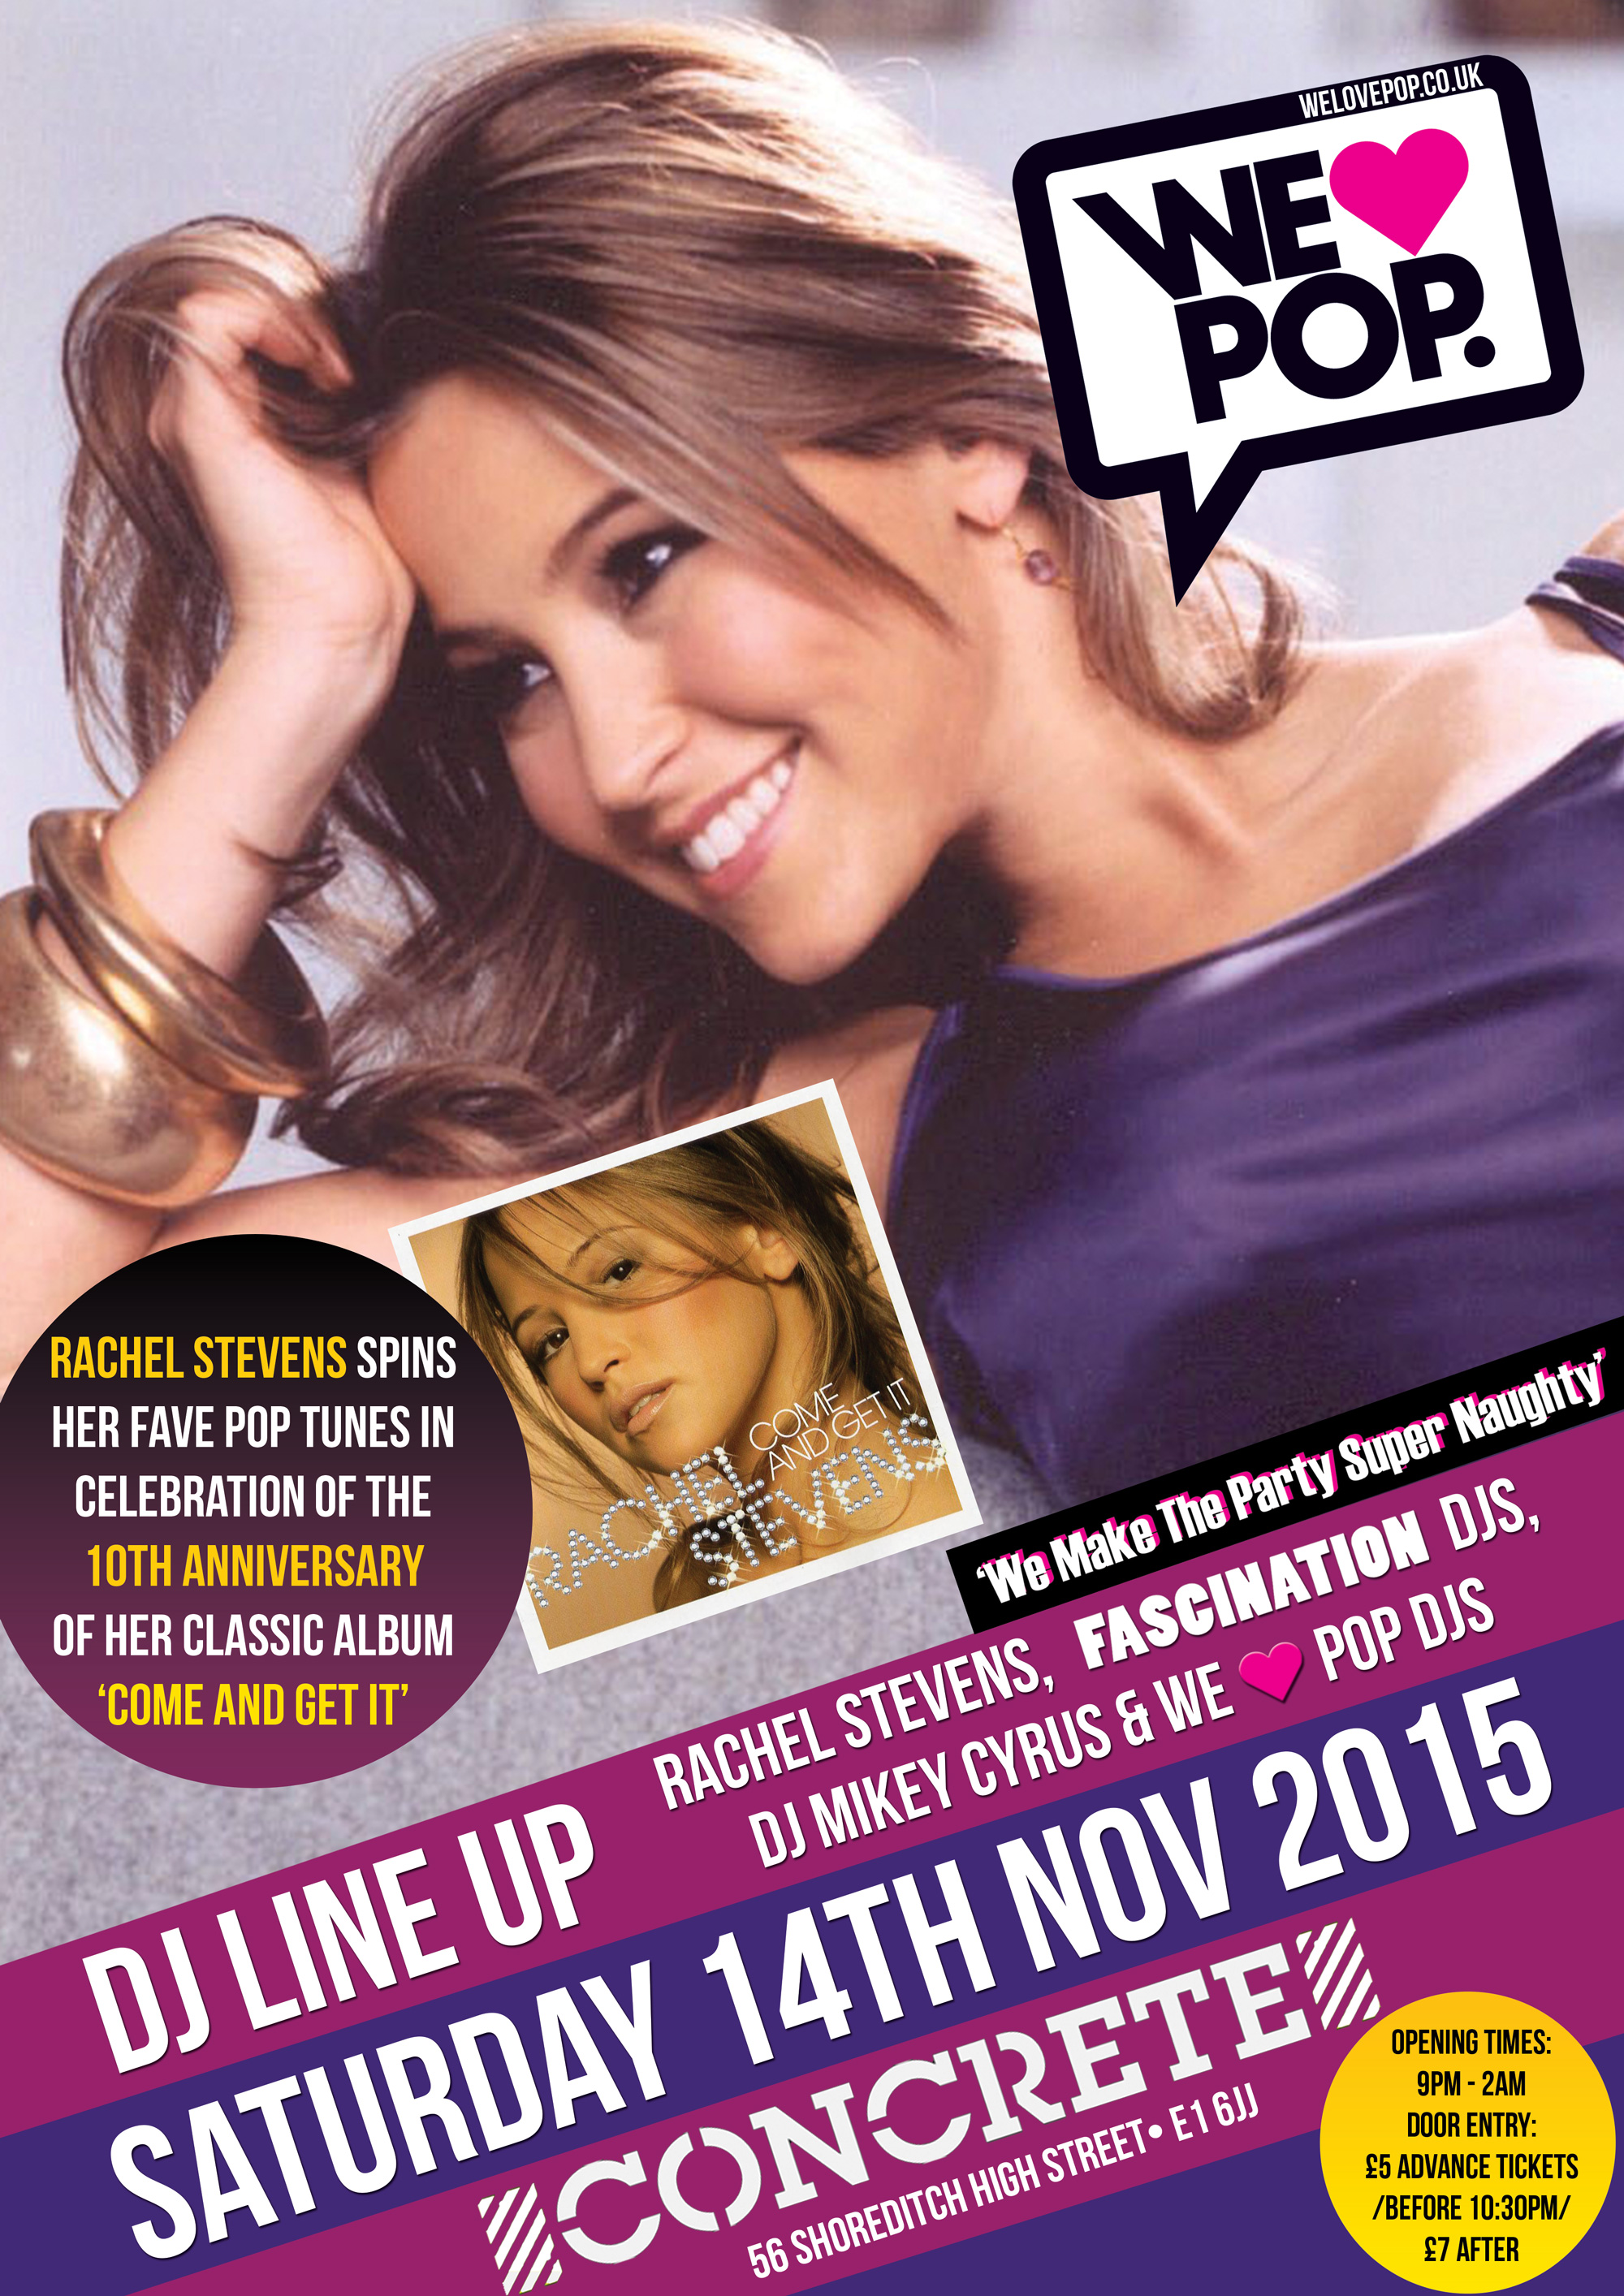 WELOVEPOP CLUB'S 'Come And Get It' Special with guest DJ RACHEL STEVENS